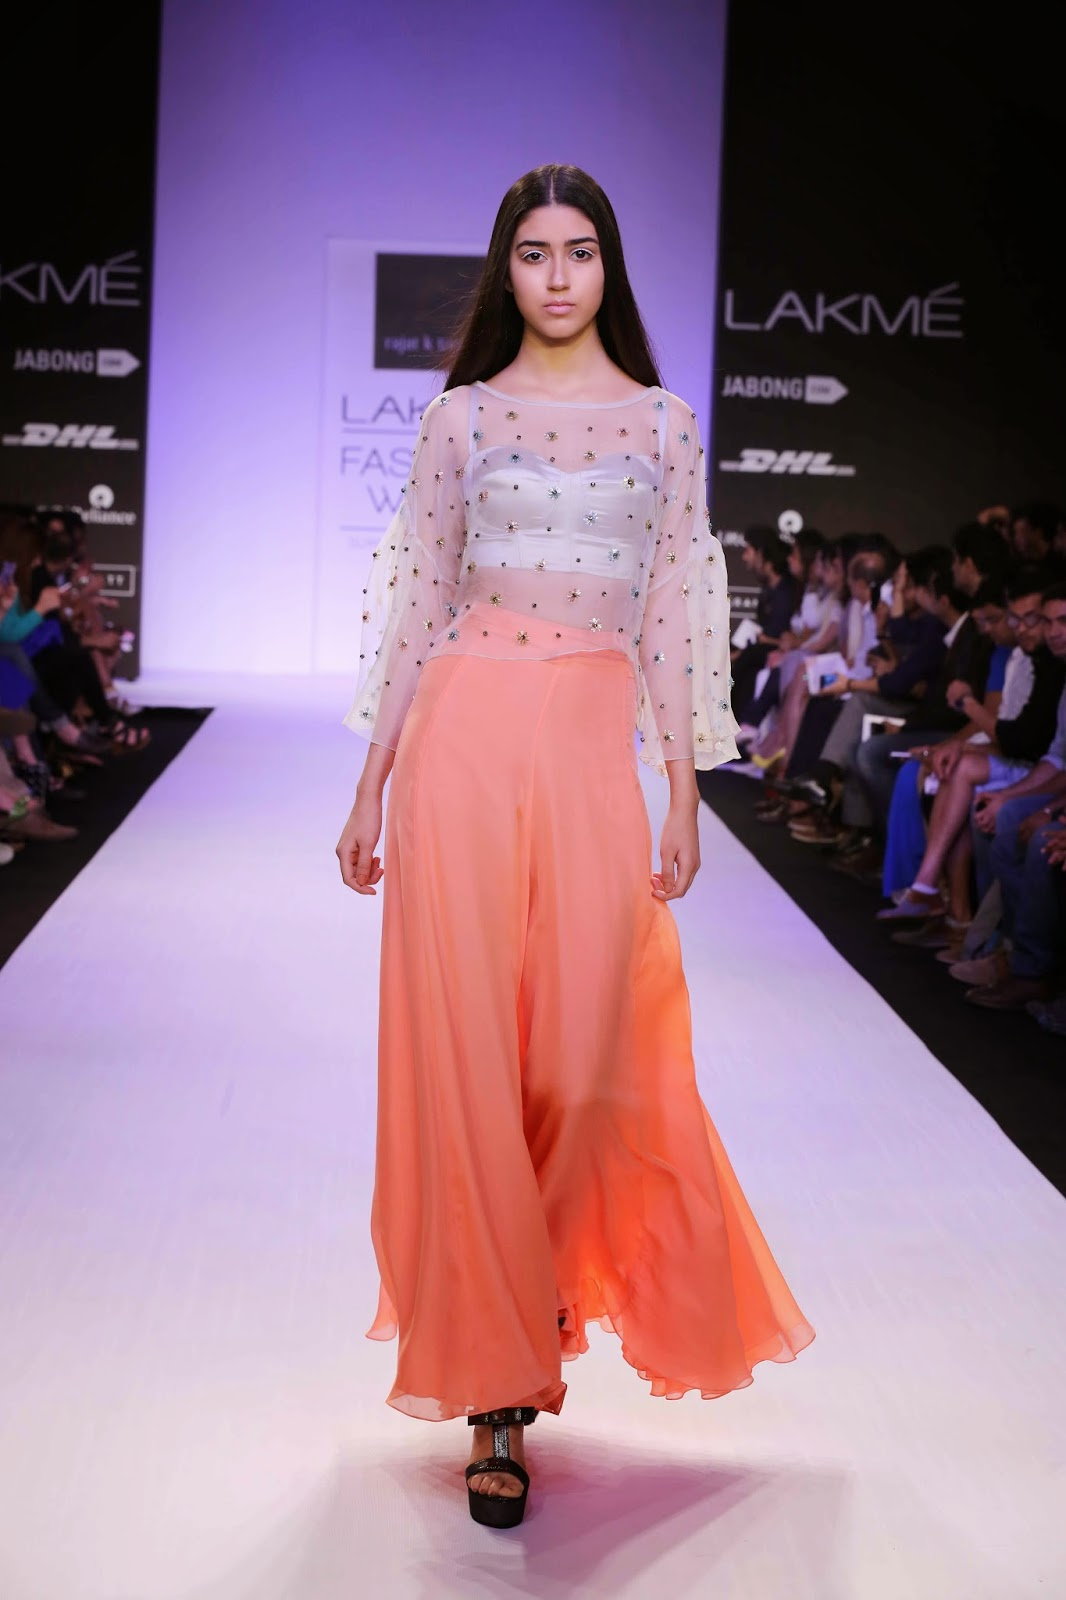 "The classic retro Hollywood looks created around divas like Grace Kelly and Audrey Hepburn inspired Rajat Tangri for his ""Garden of Eden"" collection at Lakmé Fashion Week Summer/Resort 2014. Offering a high-end elegant cocktail line with his dramatic distinct touches; Rajat worked around a colour palette of luscious gold ochre, dove grey, vintage mint with neon peach adding a pop of colour."